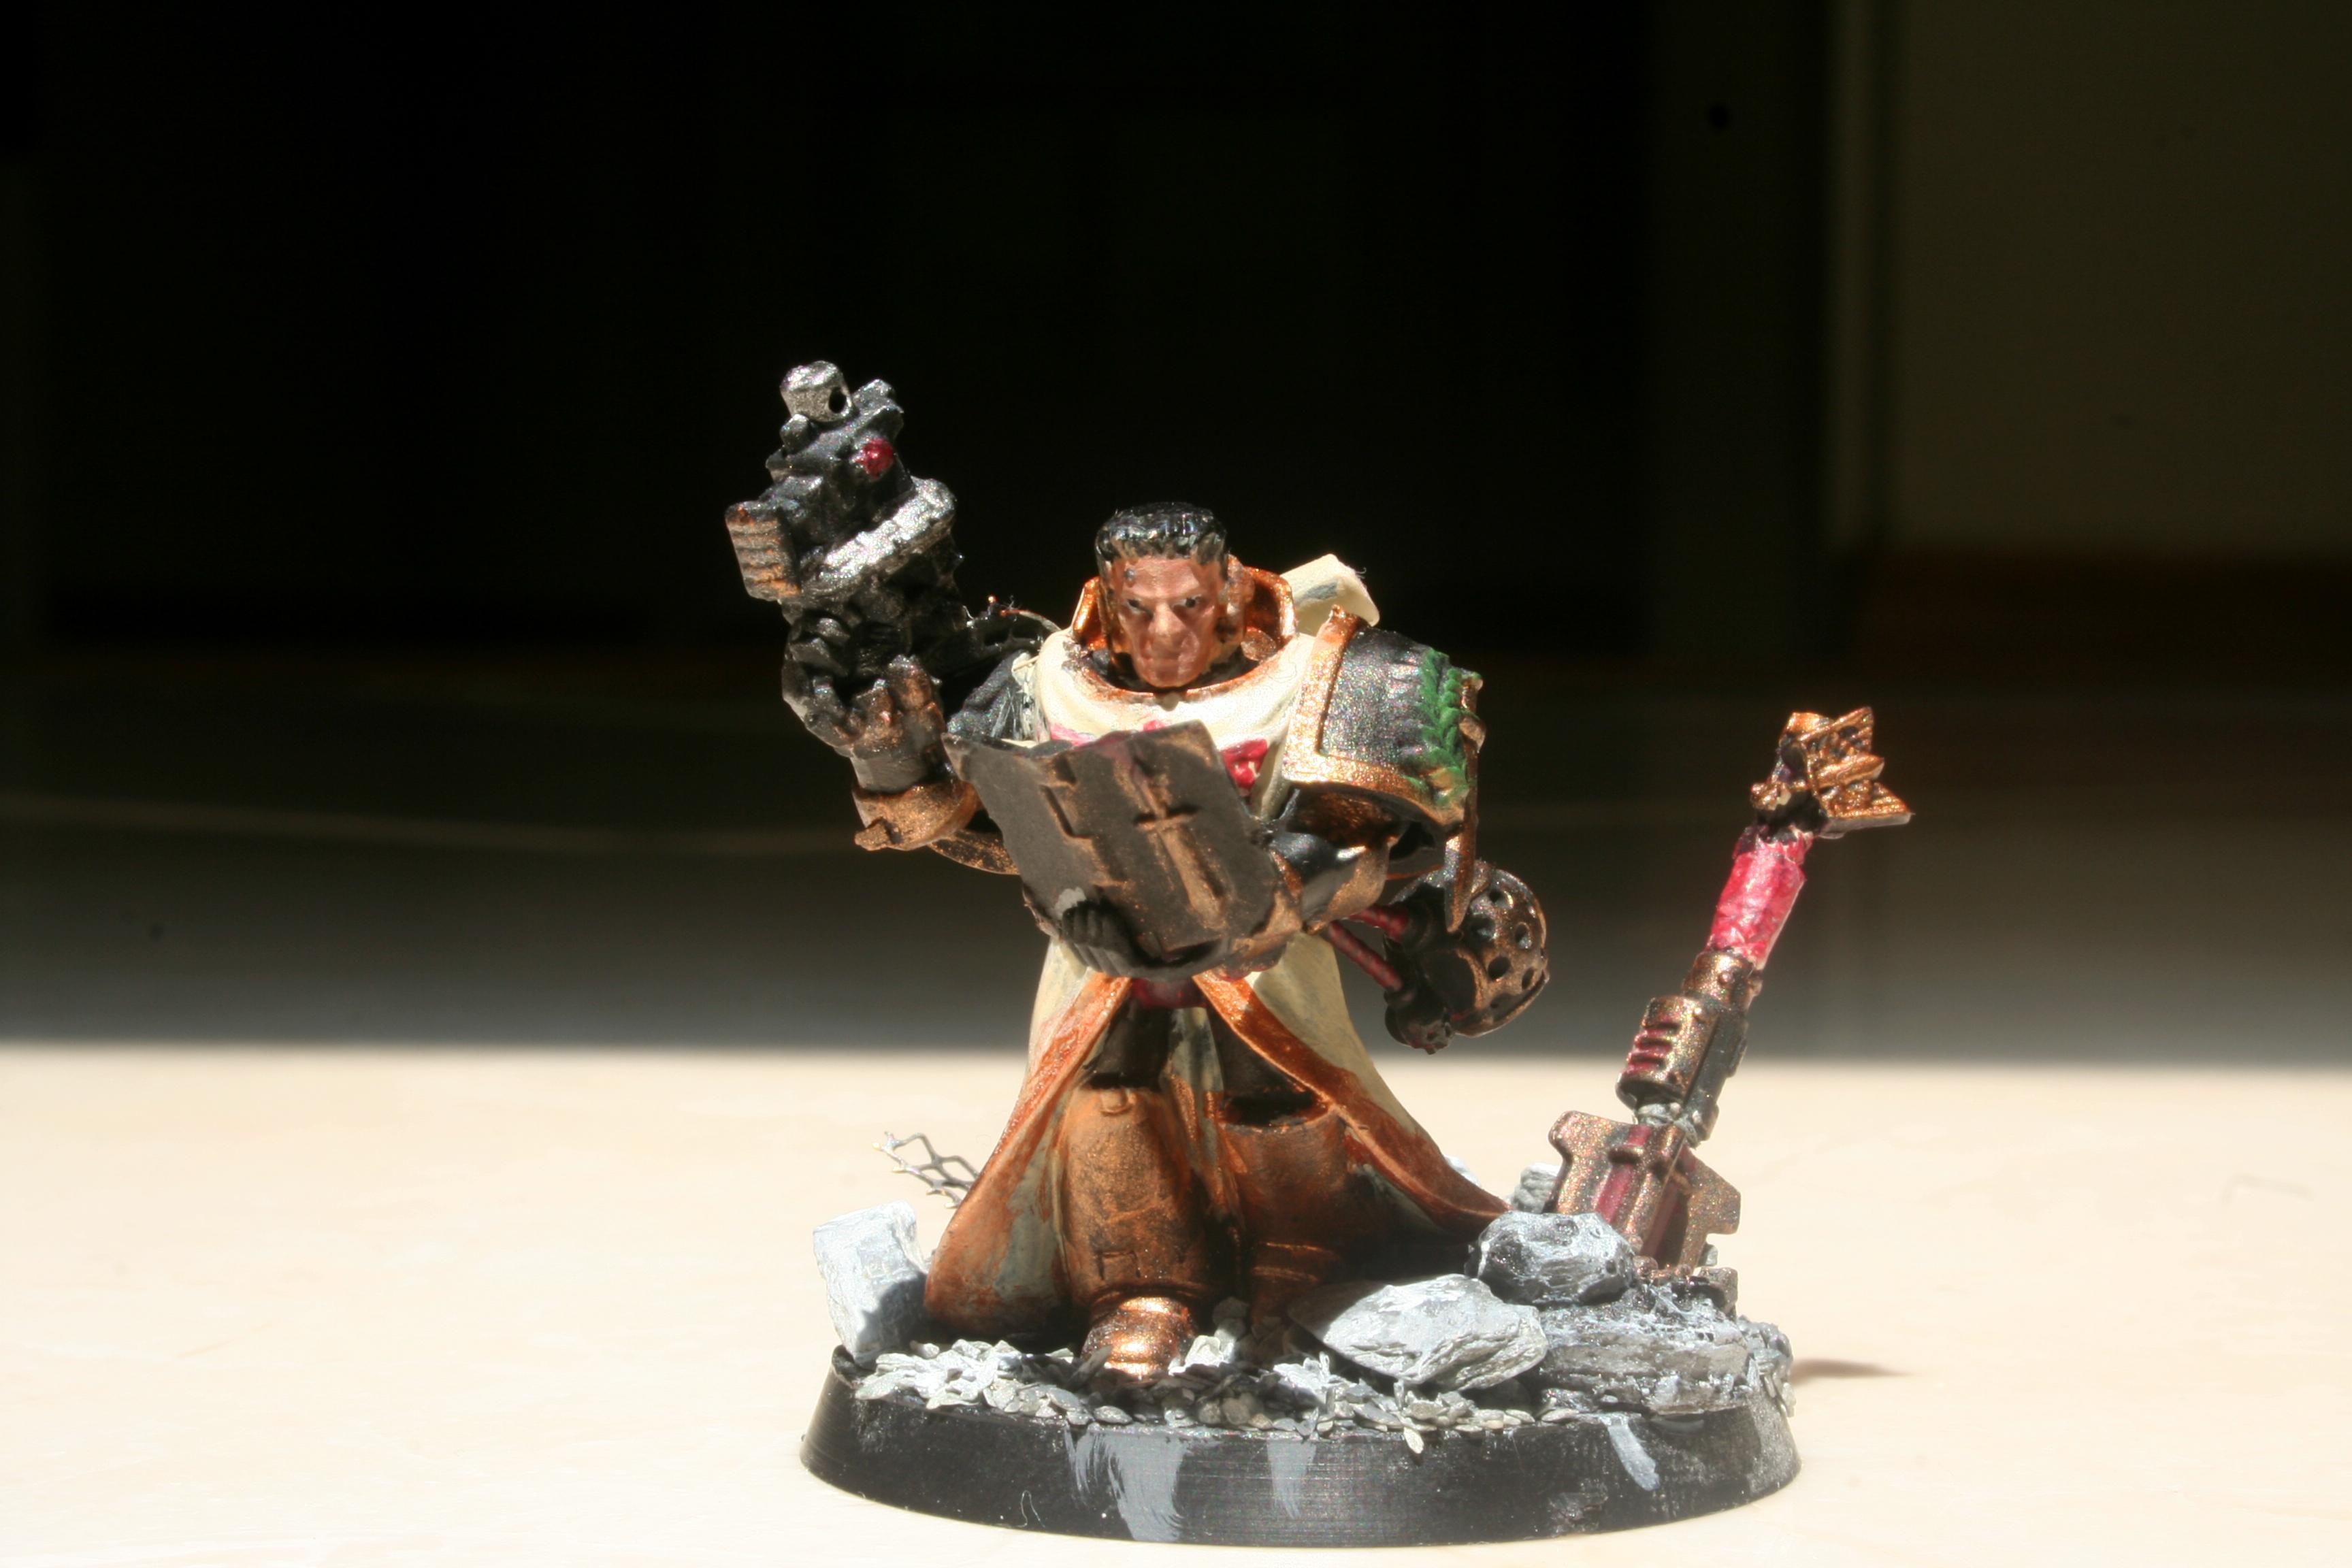 Bolter Pistol, Book, Cleric, Dark Heresy, Imperial, Maul, Rpg, Space Marines